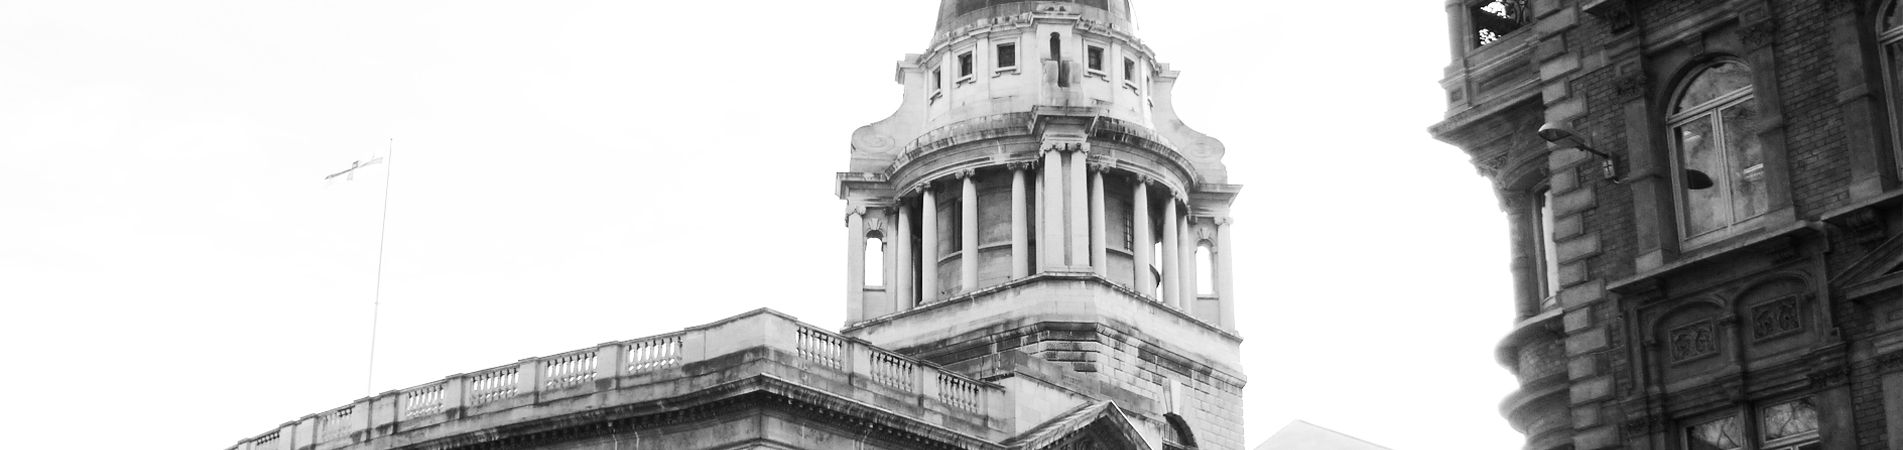 Black and White Photo of the Tower on The Royal Courts of Justice